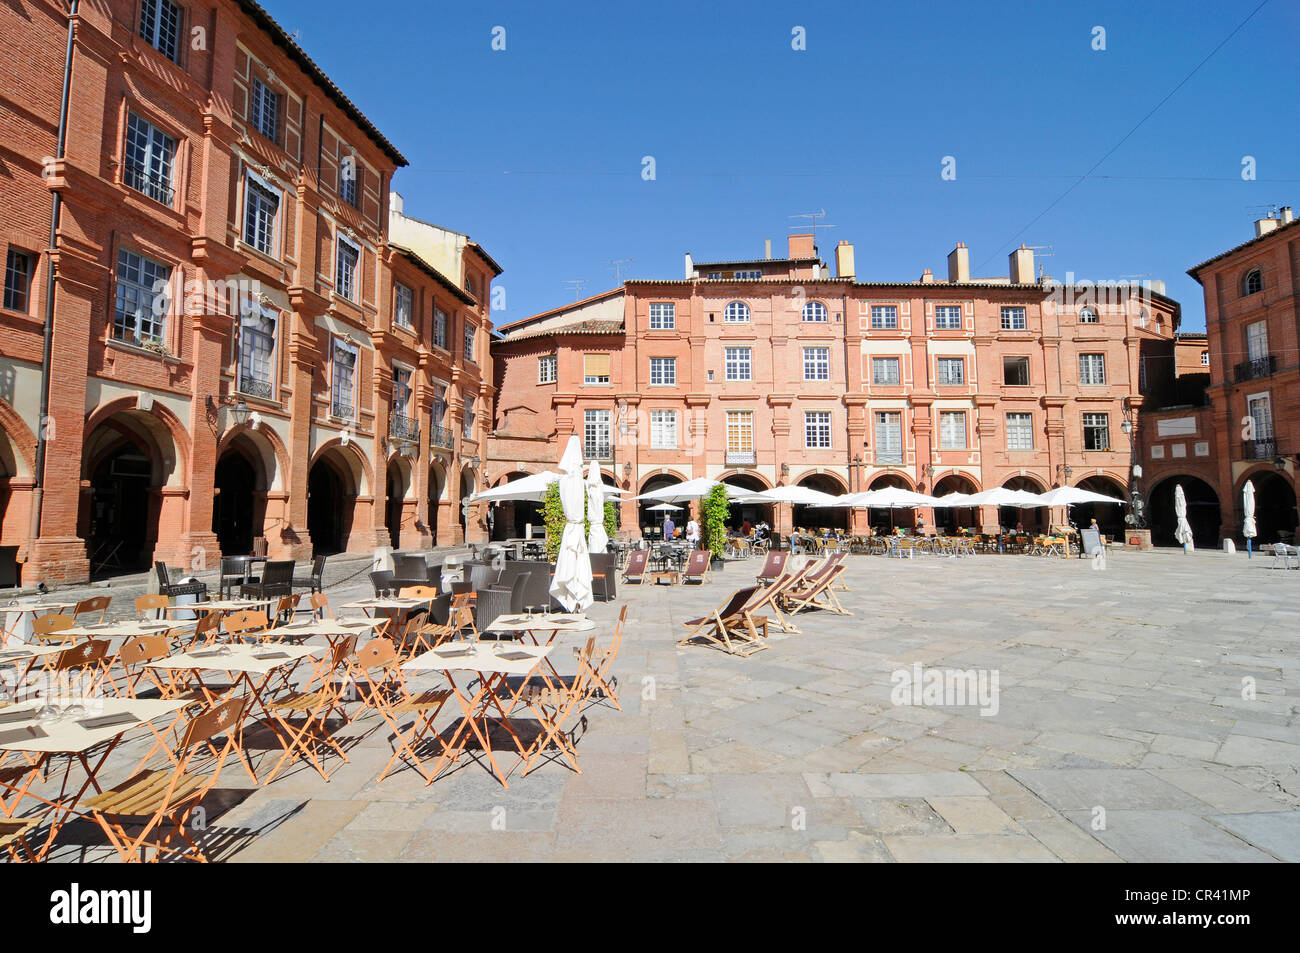 Street cafe, Place Nationale square, Montauban, Departement Tarn-et-Garonne, Midi-Pyrenees, France, Europe - Stock Image